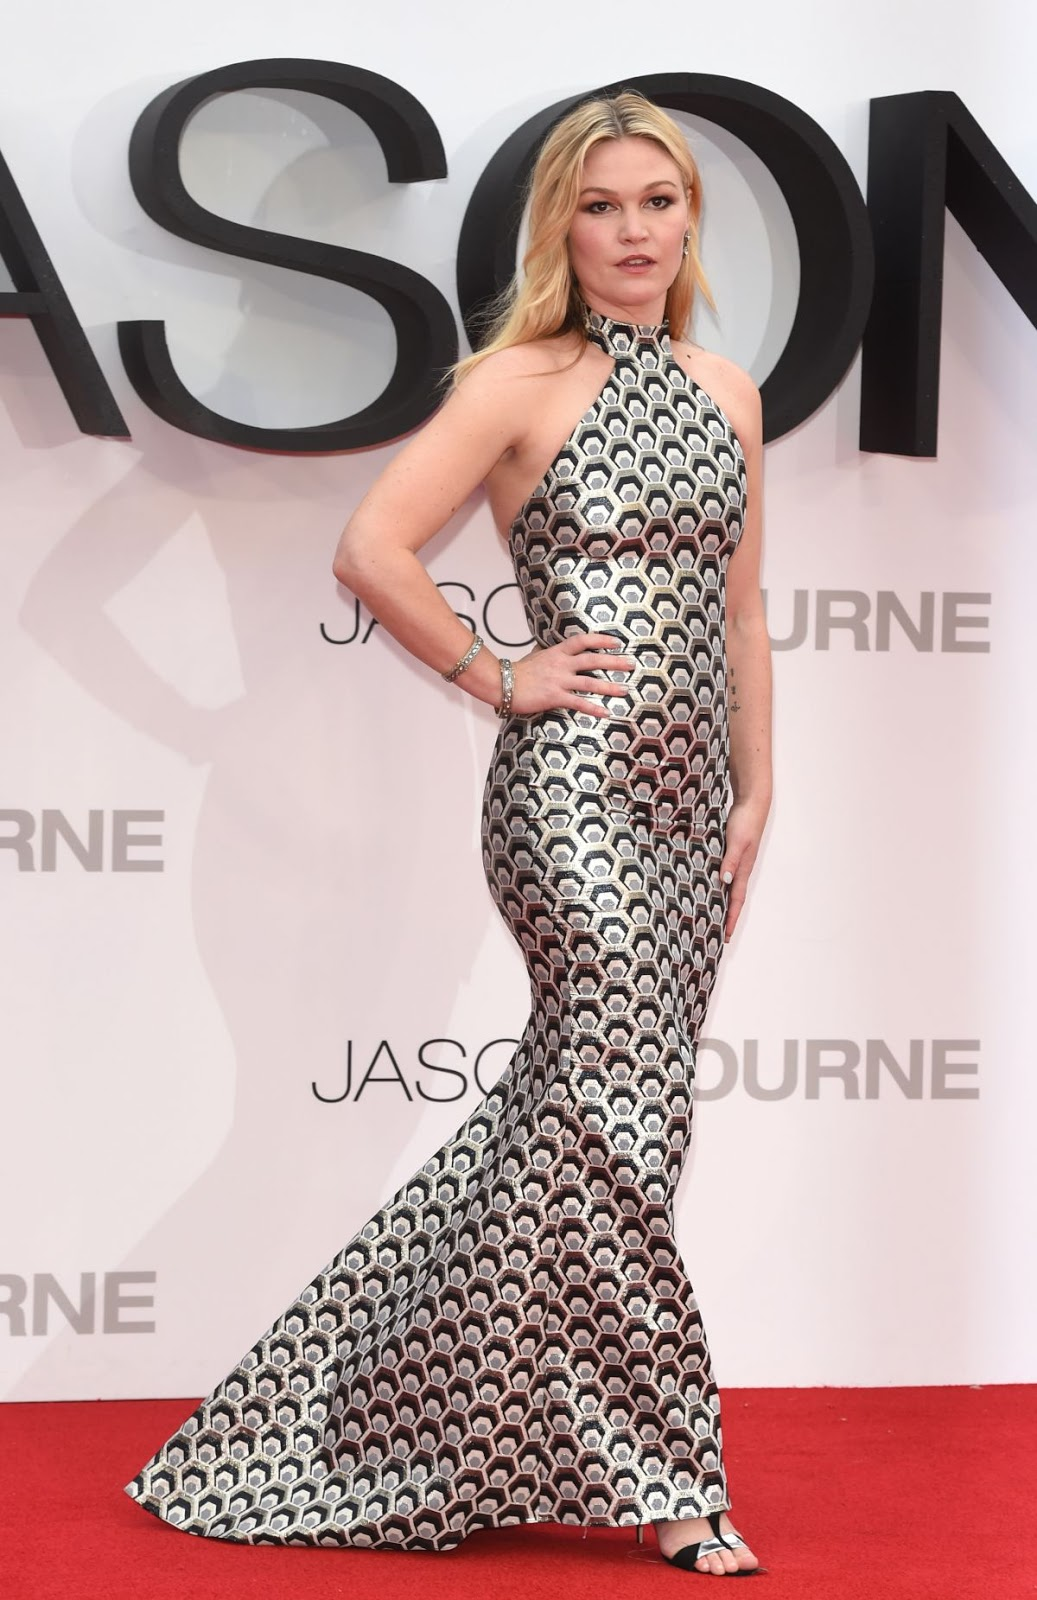 'Jason Bourne' actress Julia Stiles at Jason Bourne London Premiere